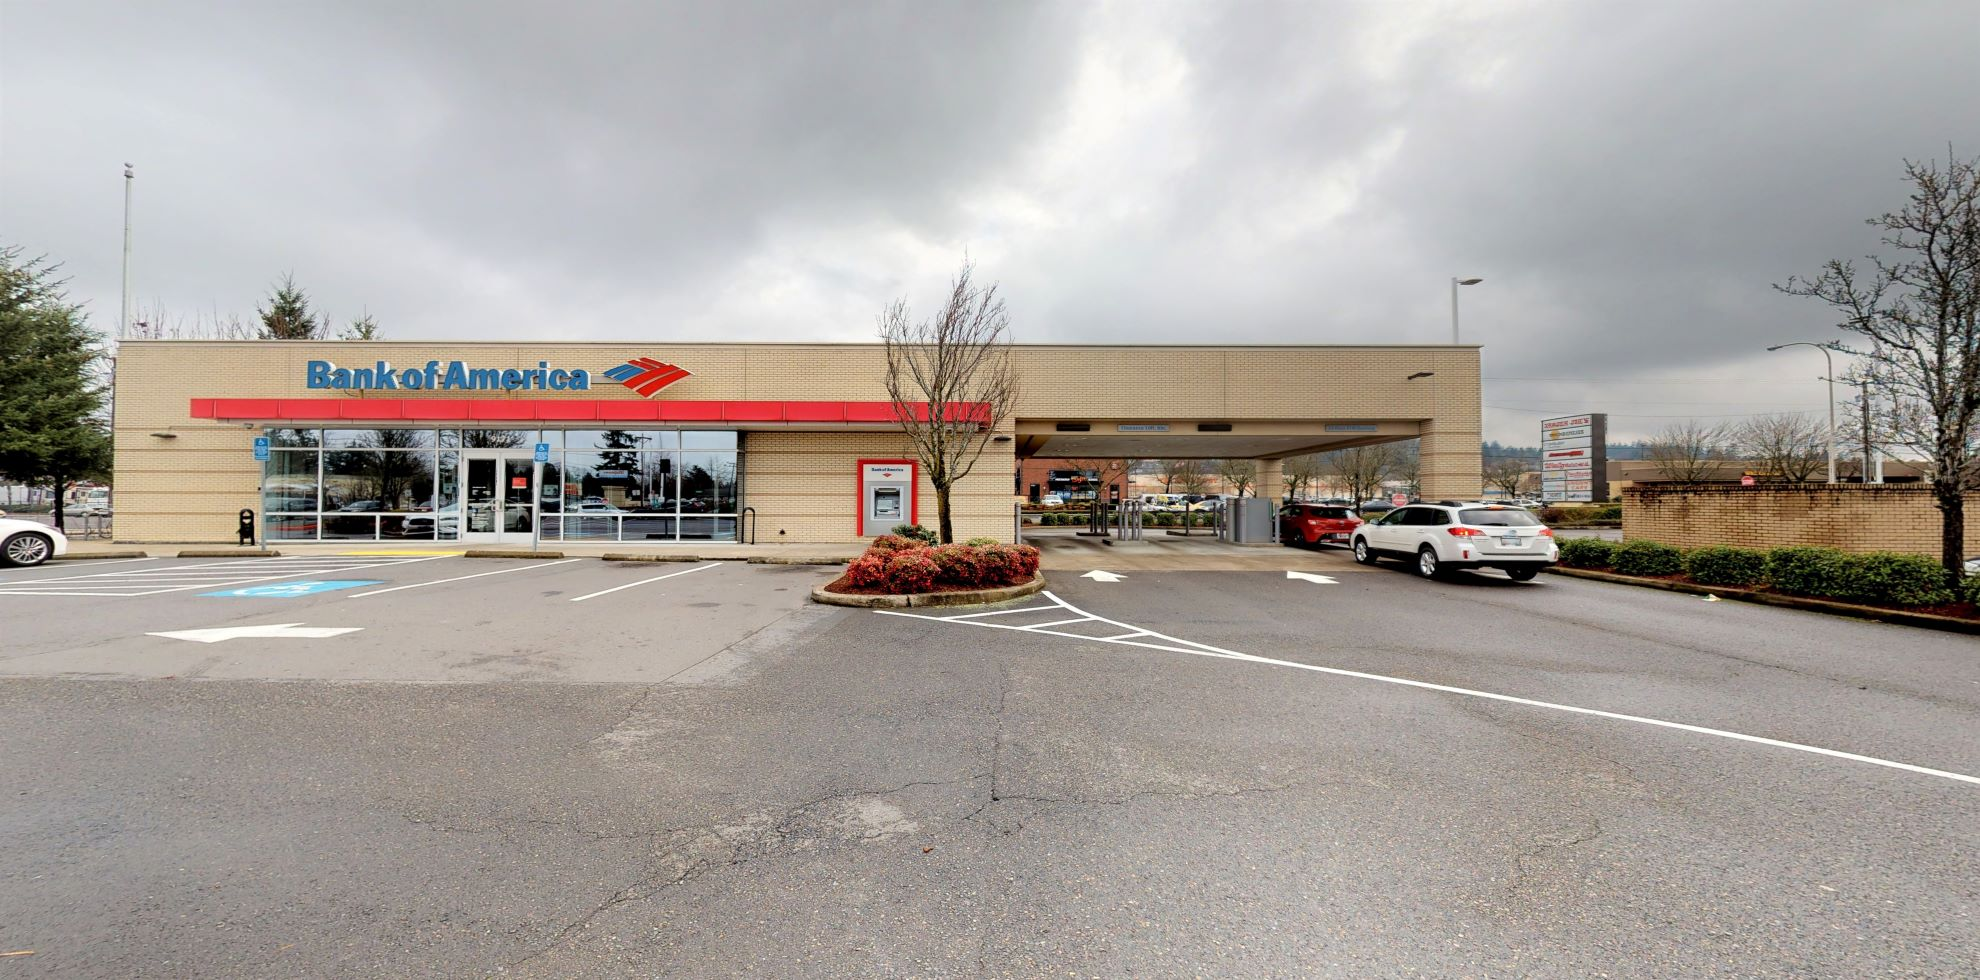 Bank of America financial center with drive-thru ATM   9171 SE 82nd Ave, Portland, OR 97086